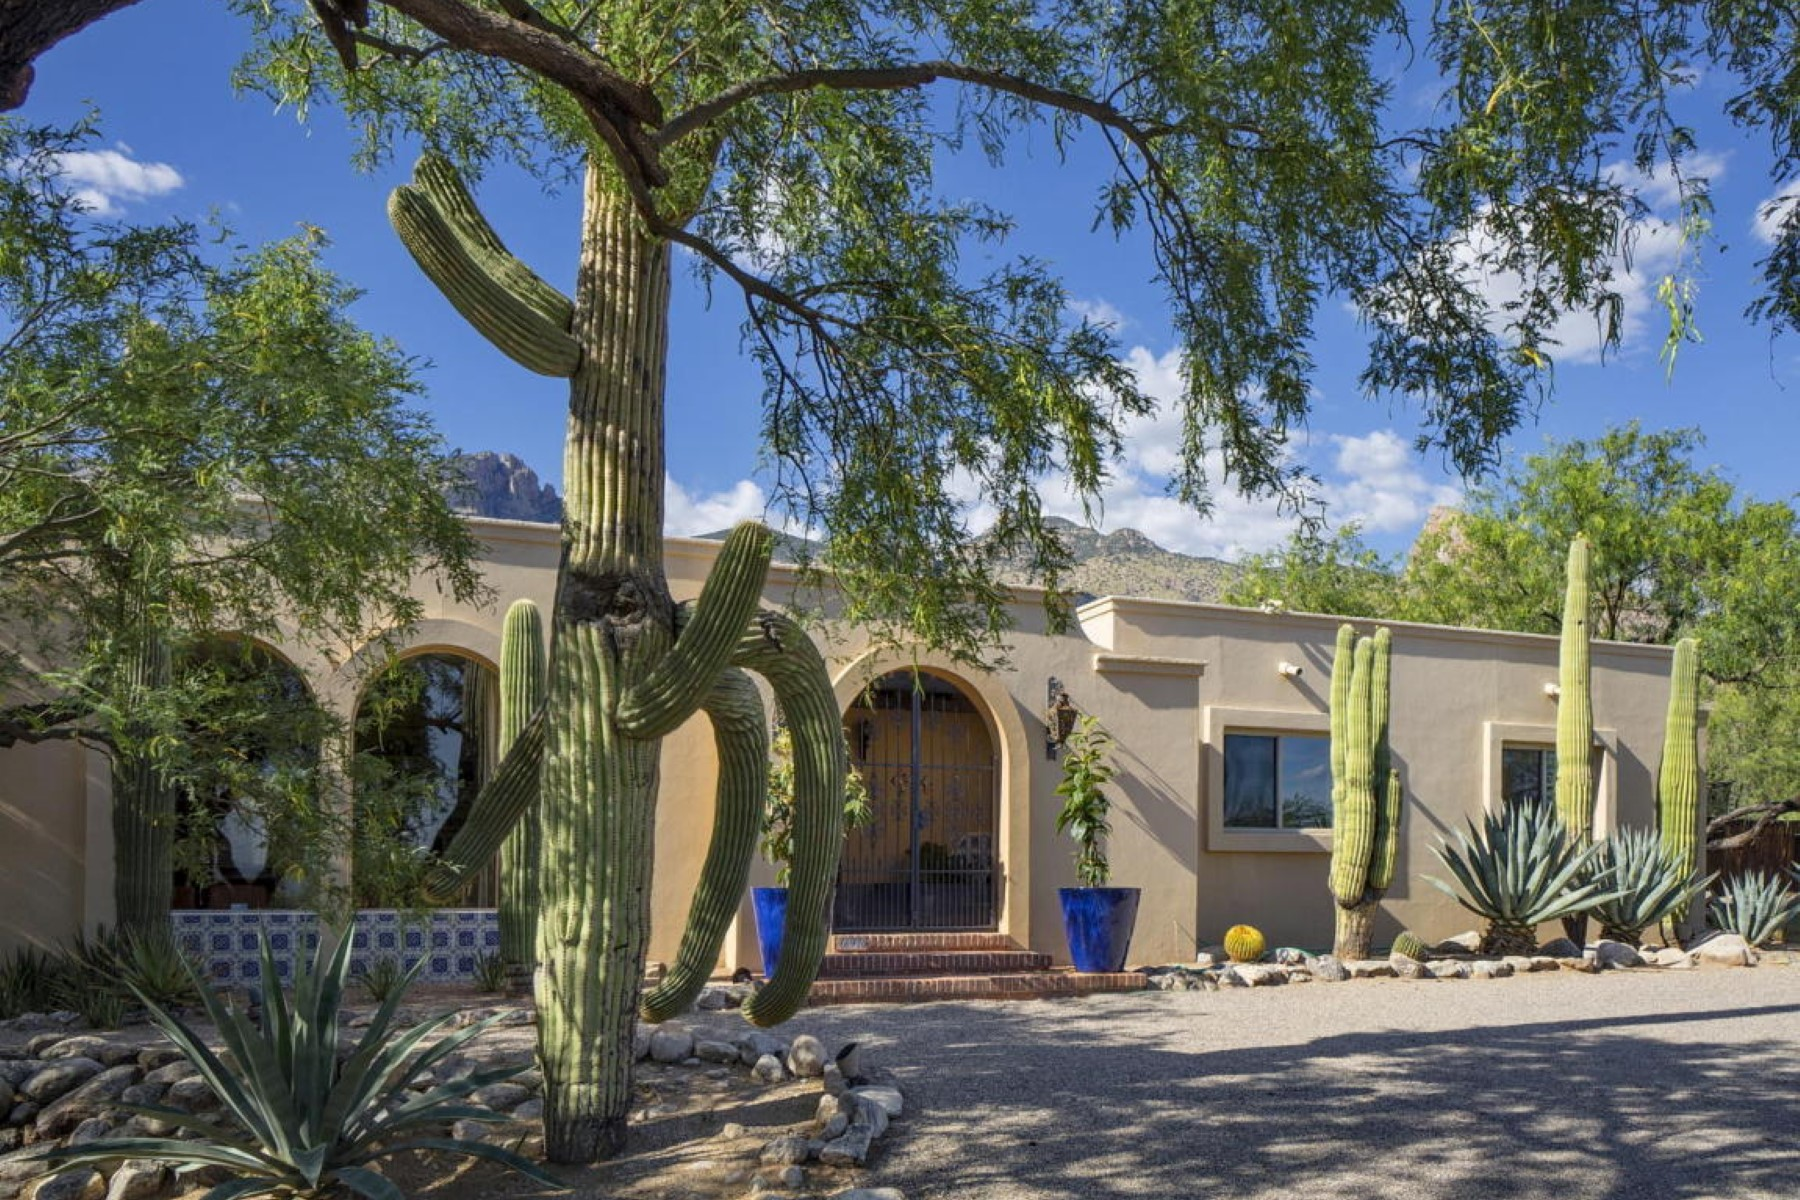 Single Family Home for Sale at Iron gates and fountain leads you to entry of this wonderful Foothills home. 6920 N Alvernon Way Tucson, Arizona 85718 United States